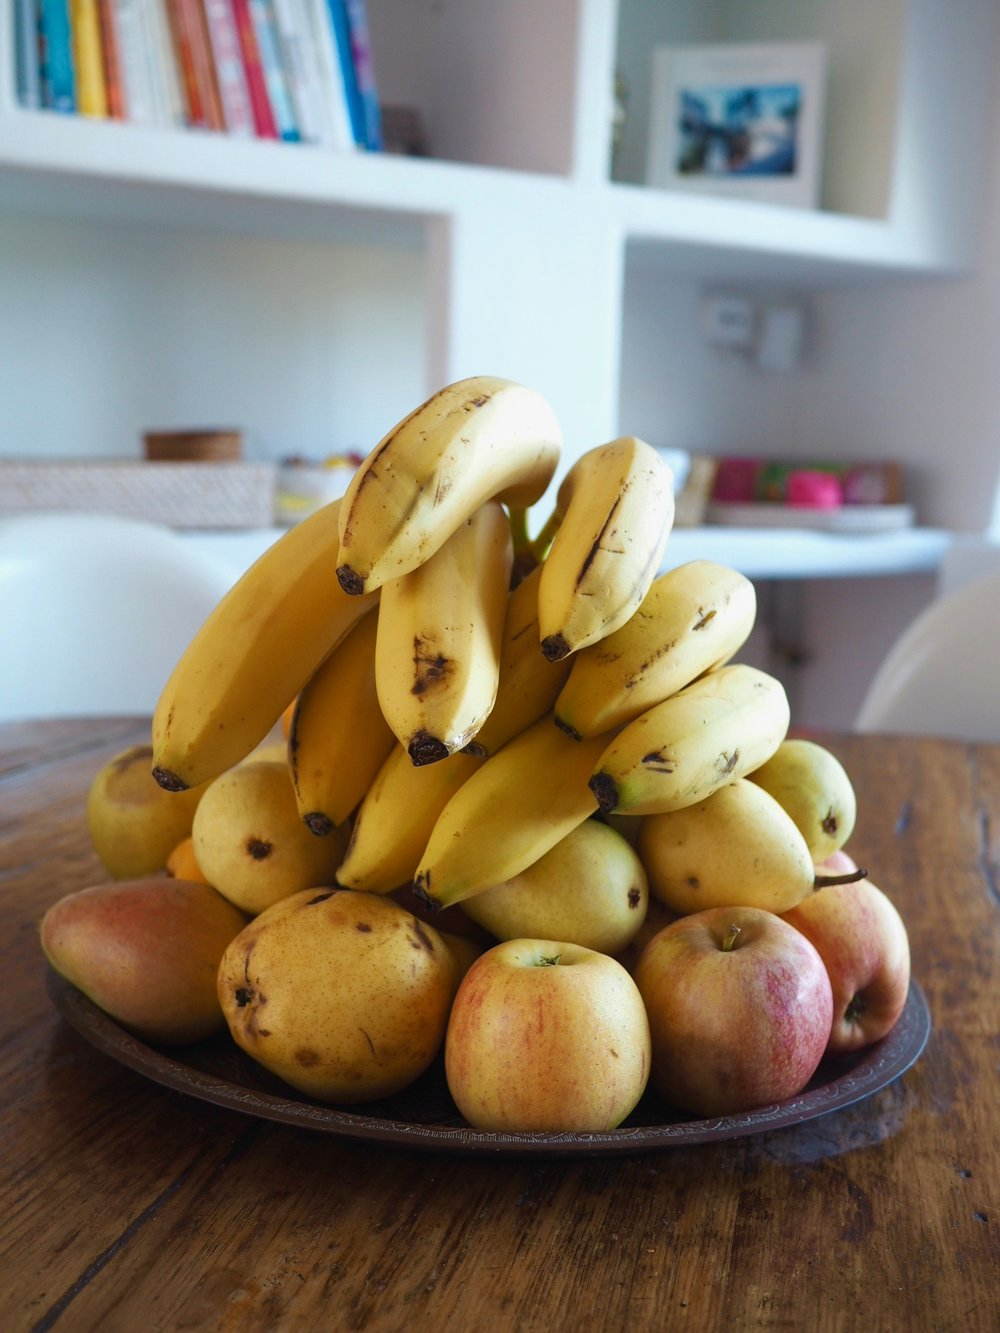 Bananas, fruit bowl